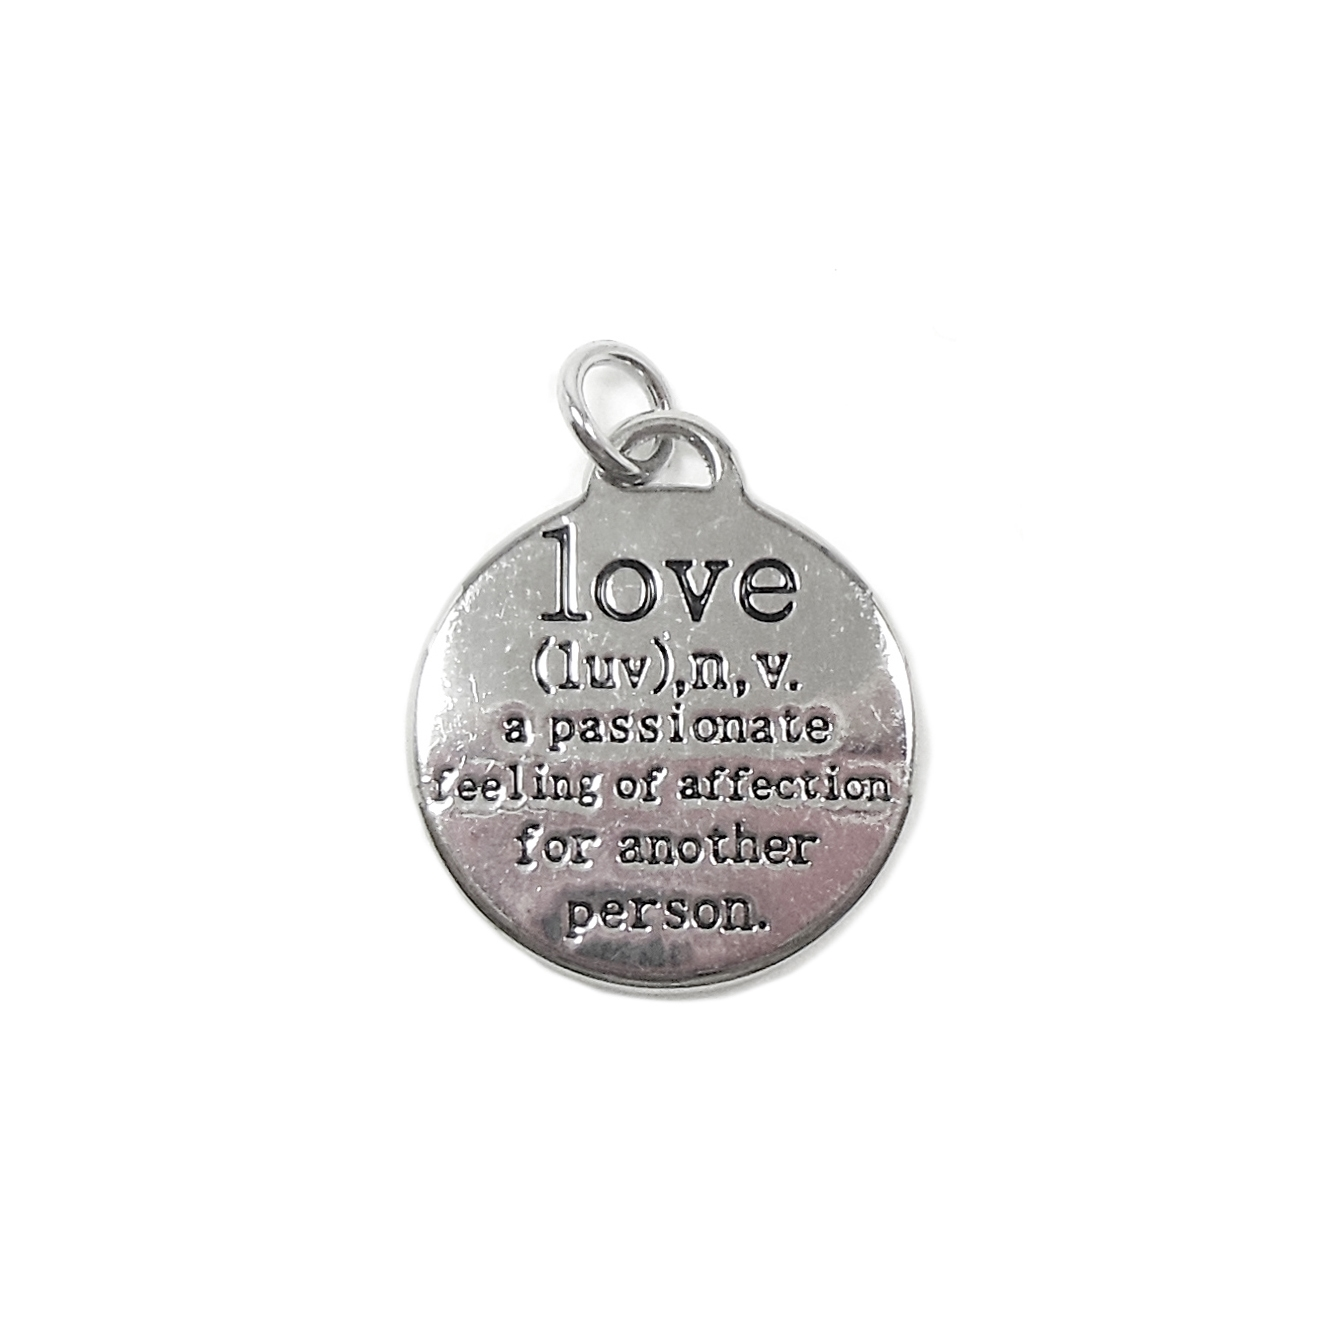 love charms, antique silver, jewelry making